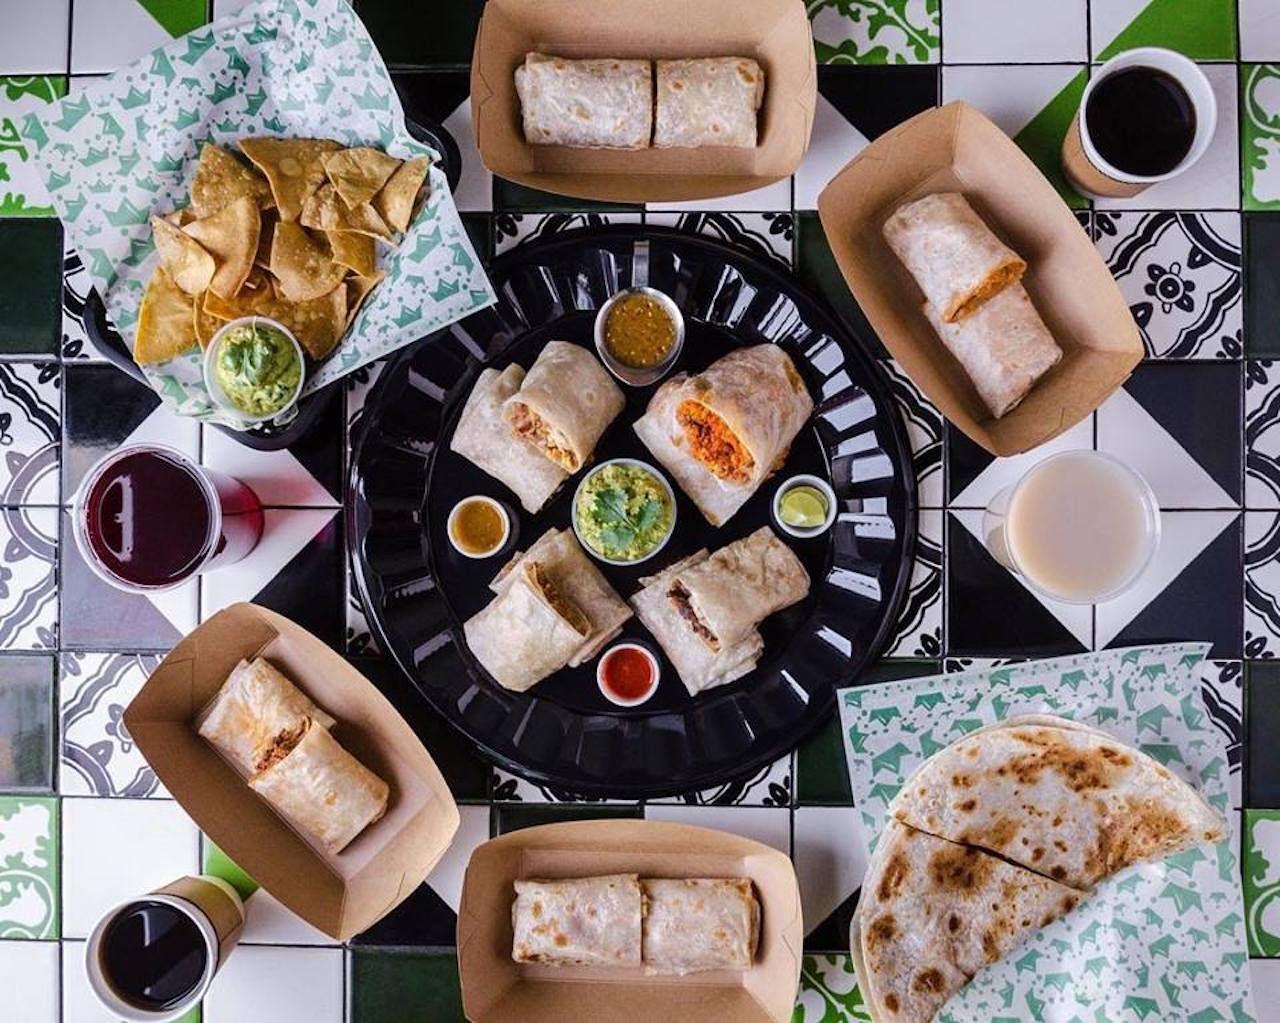 assortment of burritos with and other Mexican food